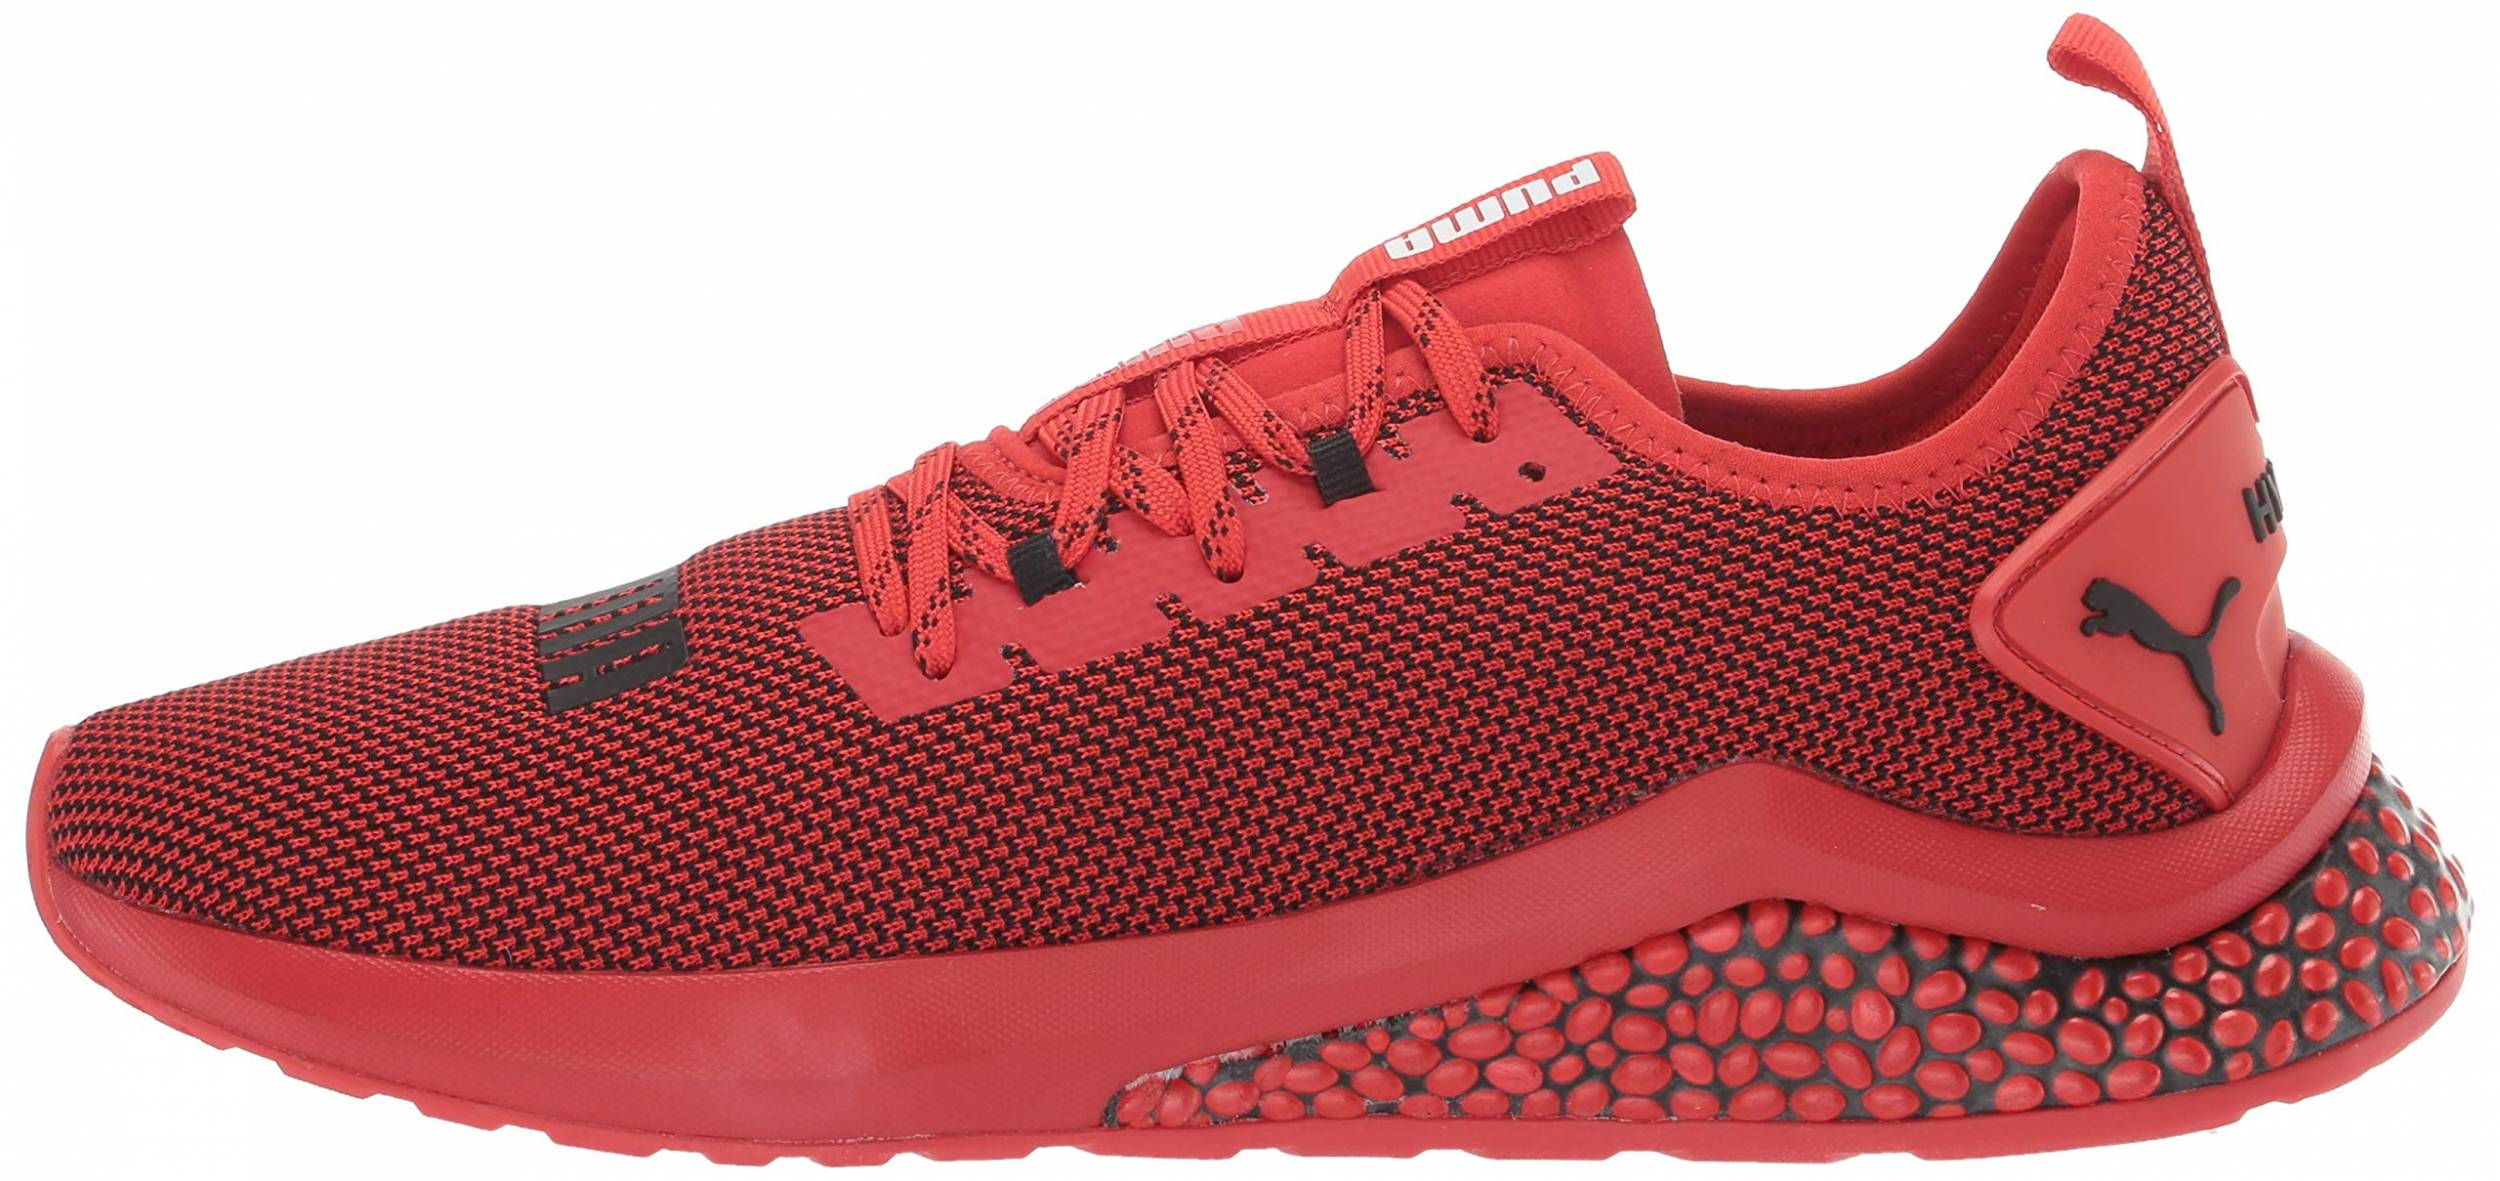 Save 61% on Puma Road Running Shoes (87